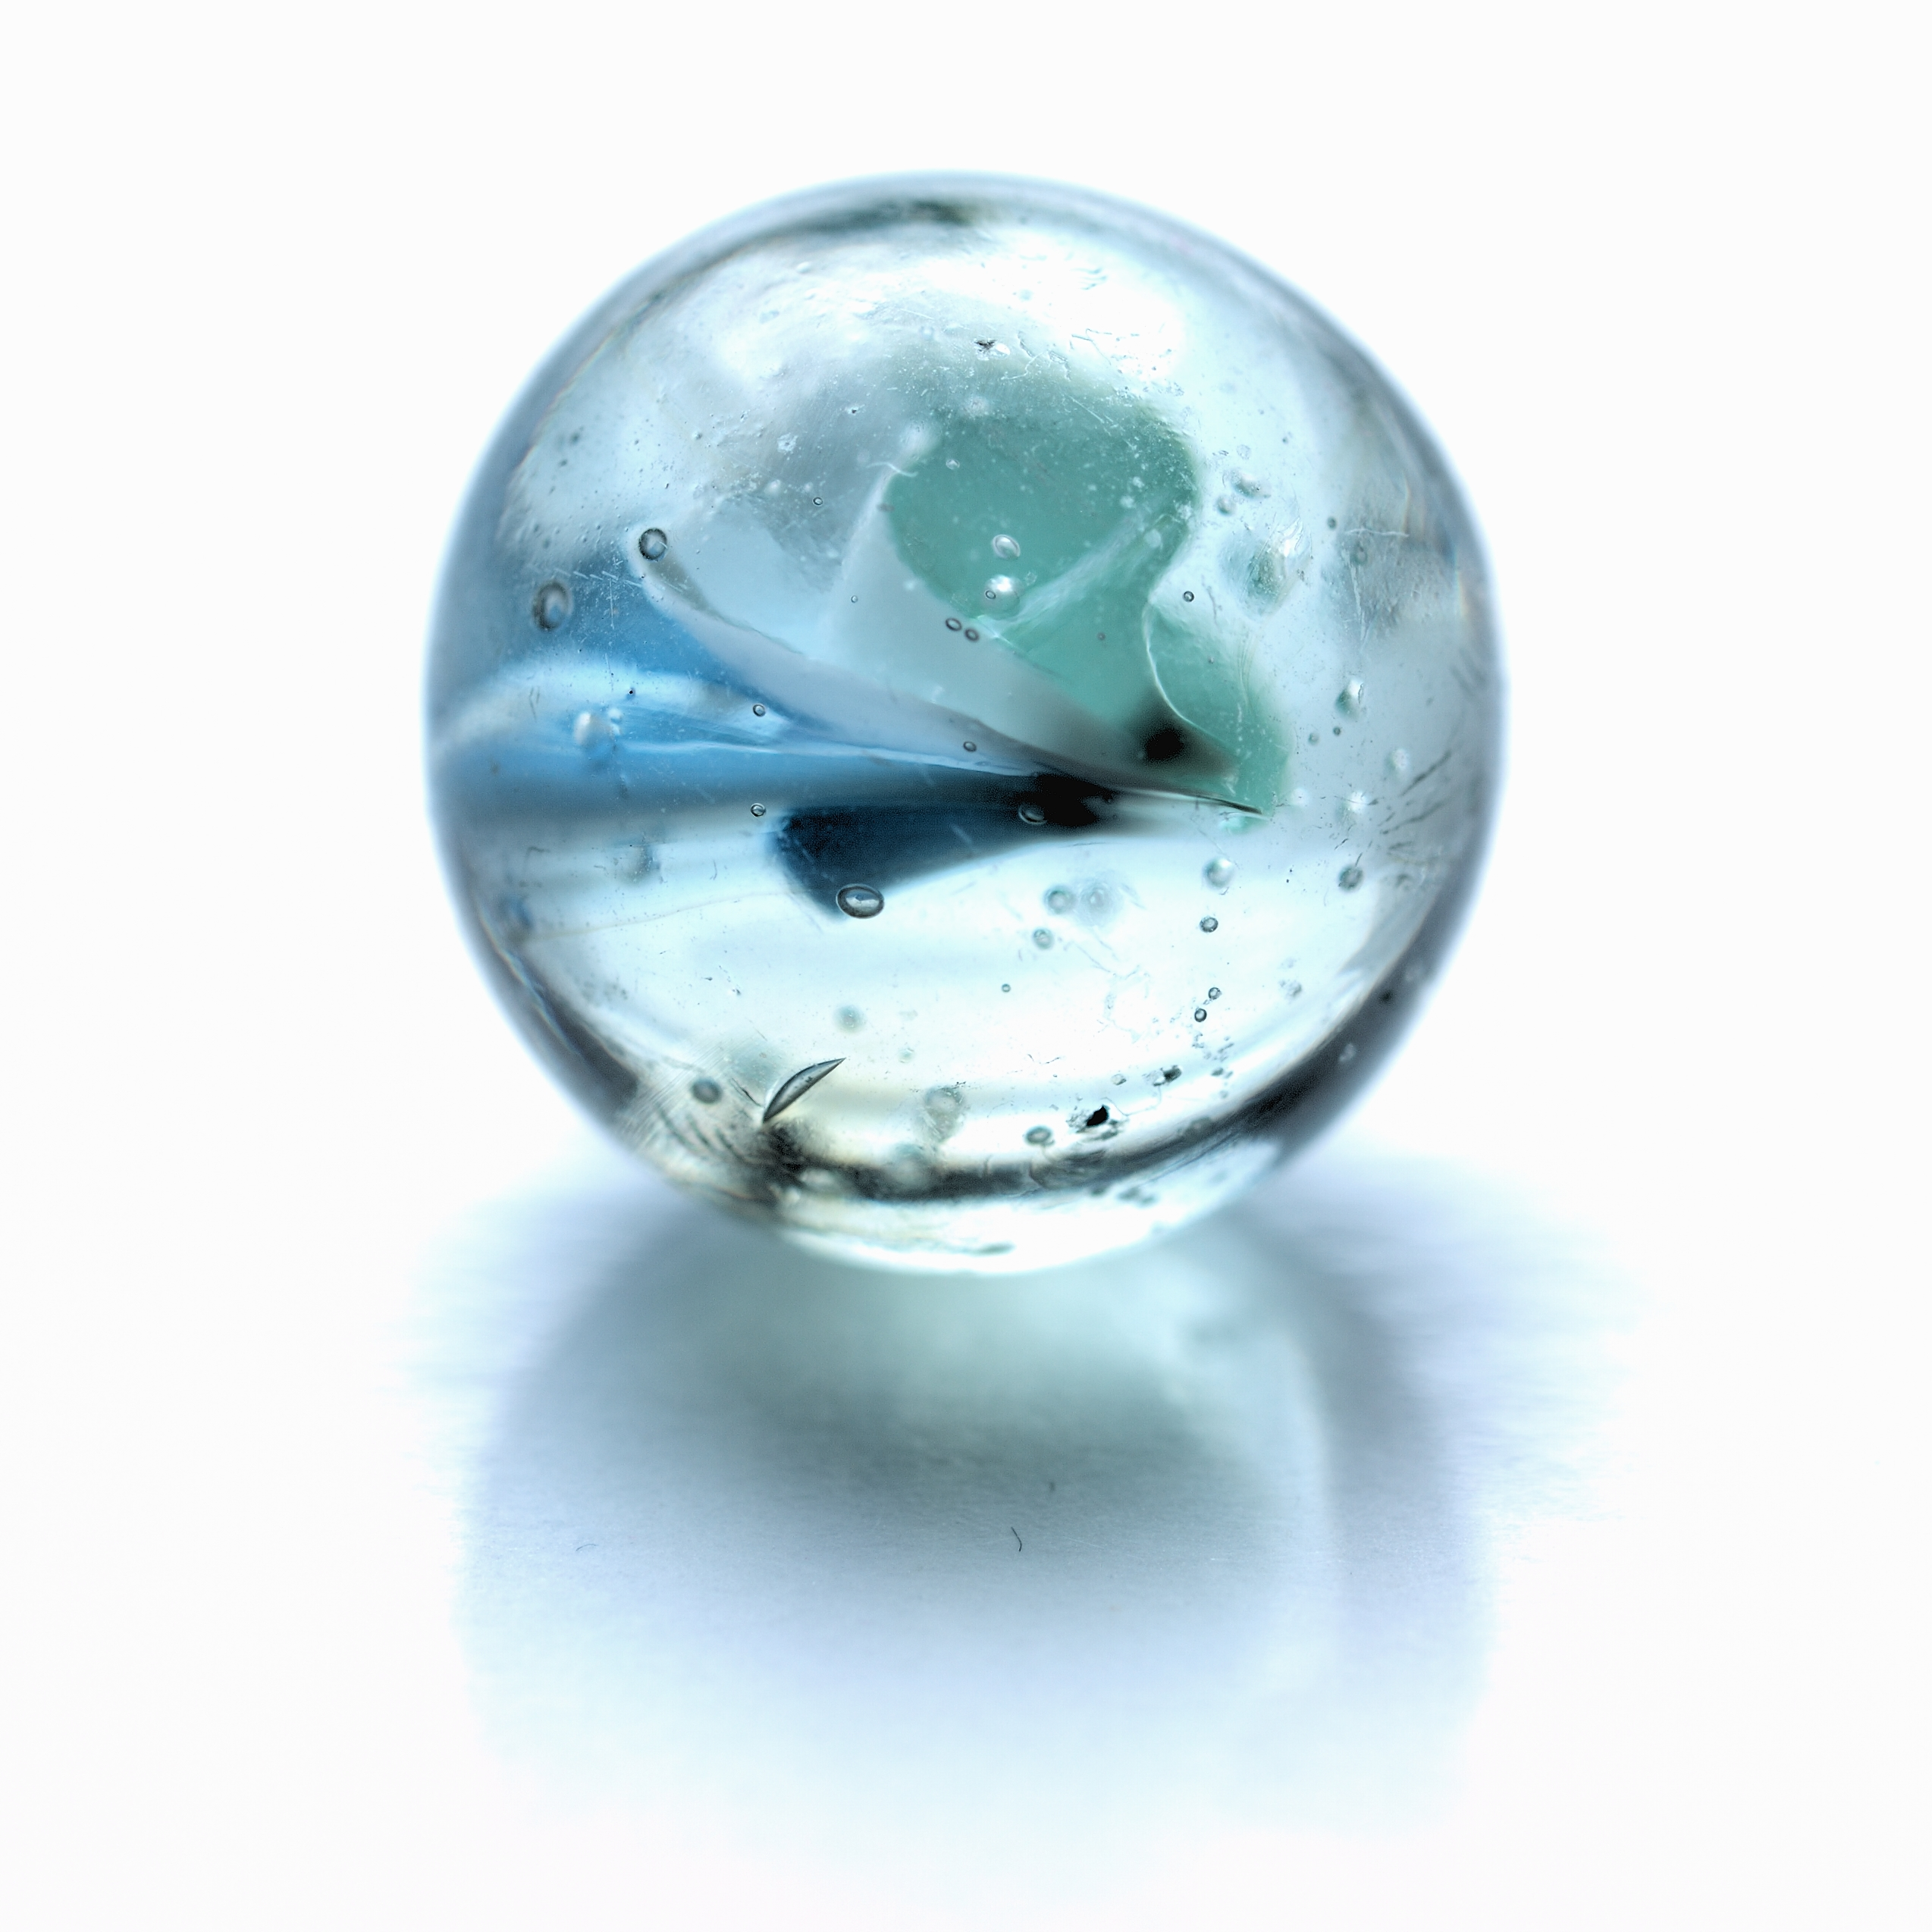 Is Glass A Solid Or A Liquid At Room Temperature